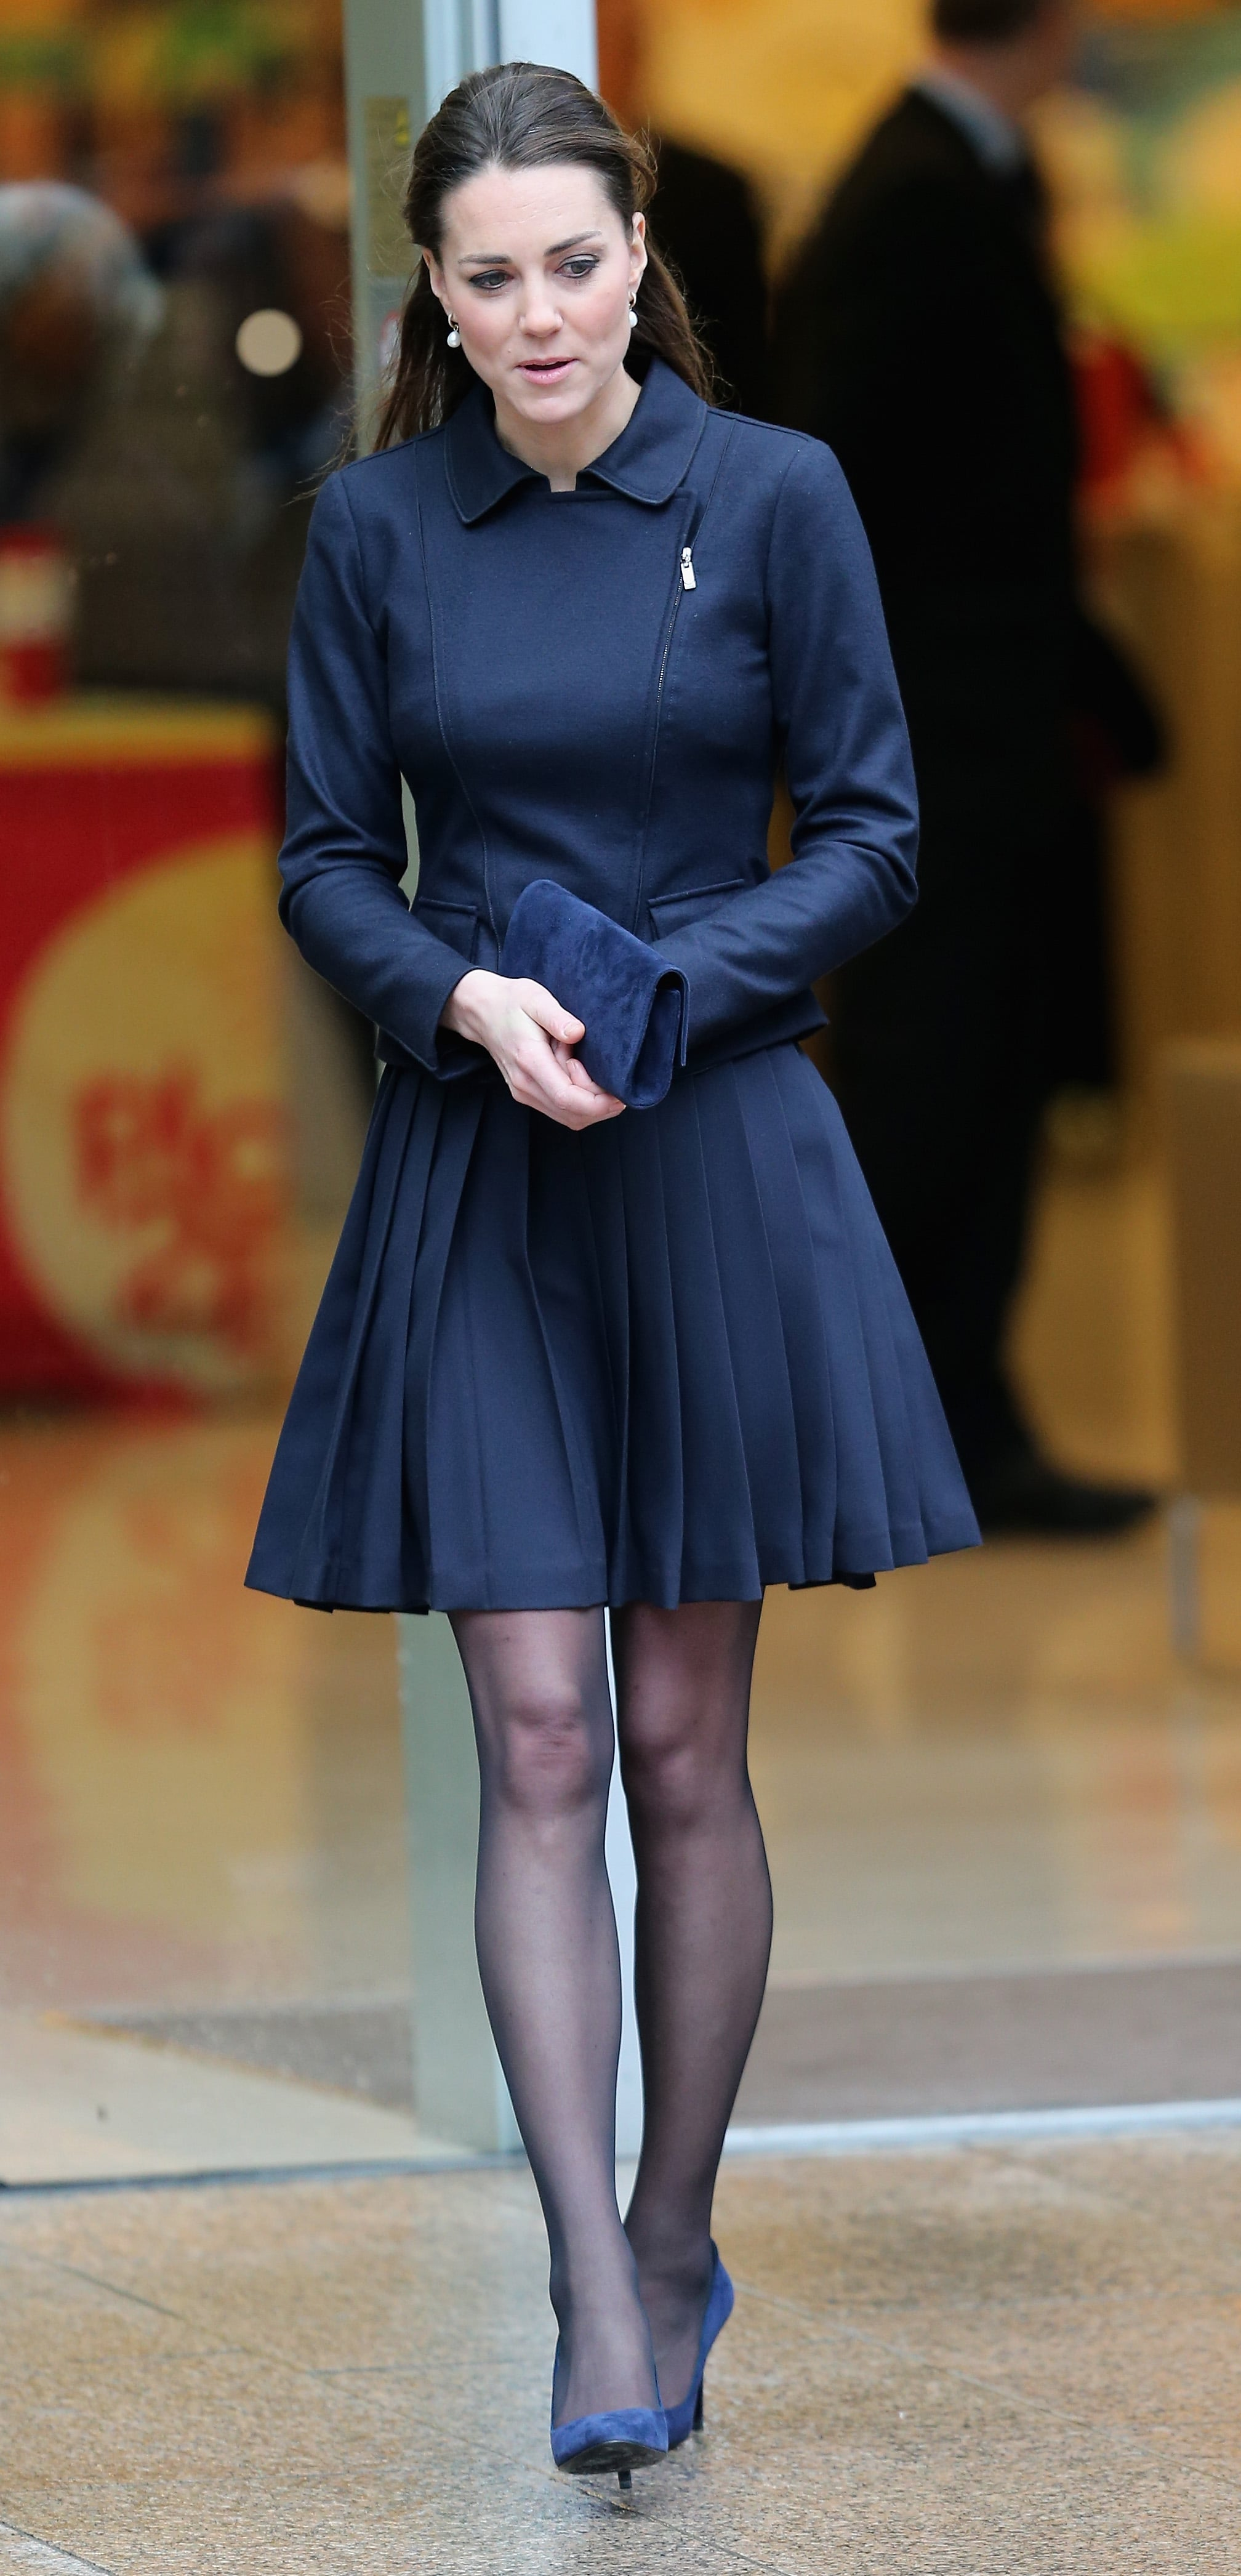 Kate Middleton in a Navy Dress